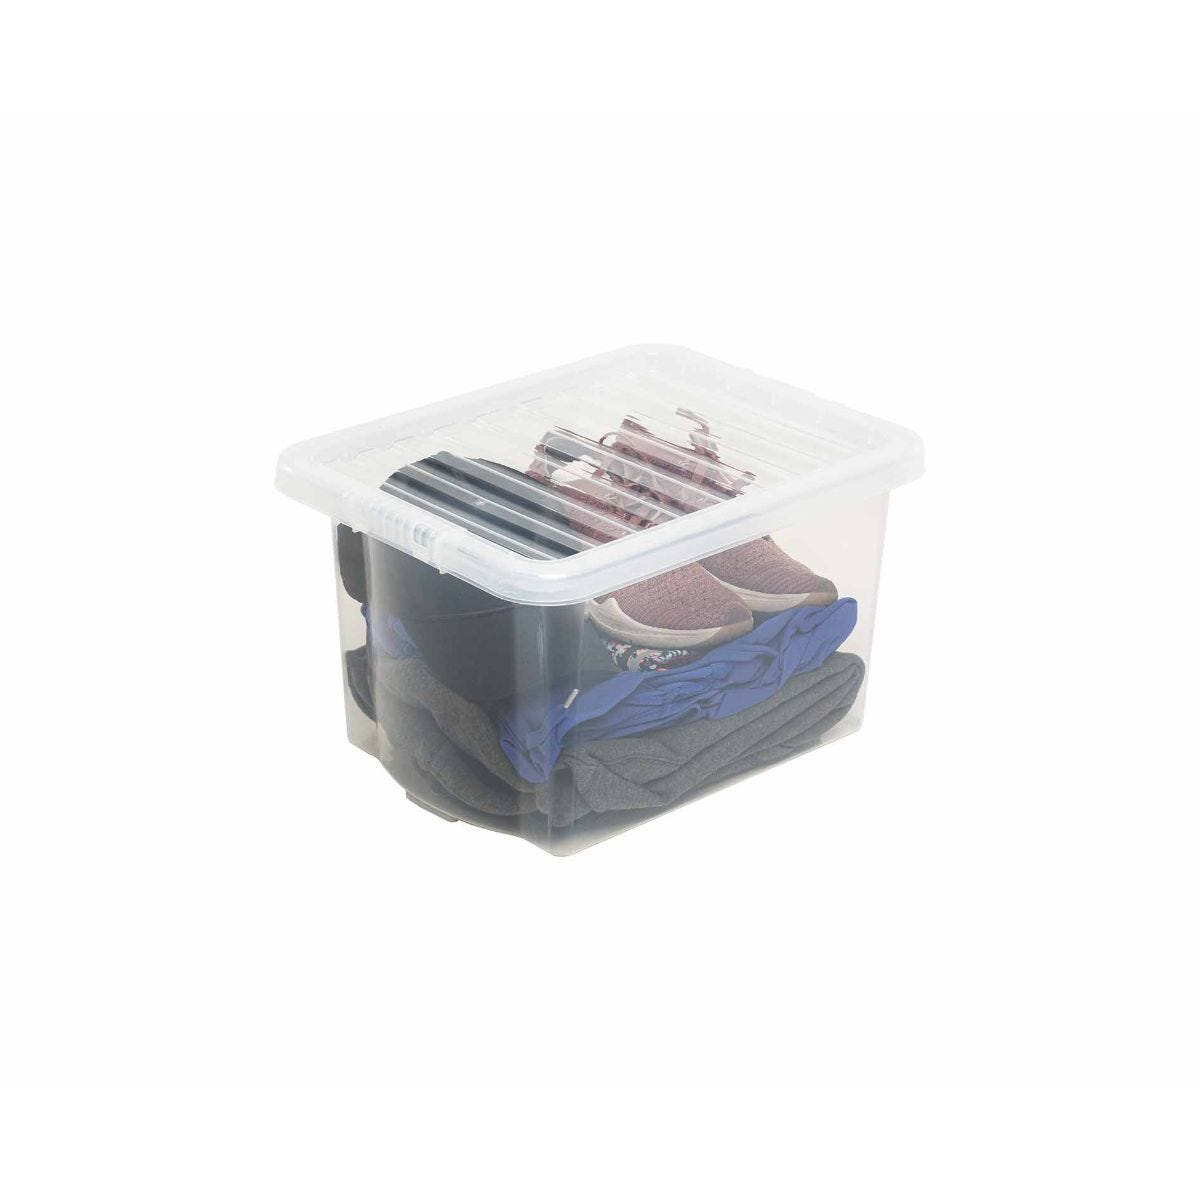 Wham Box and Lid 24 Litre Clear Pack of 3